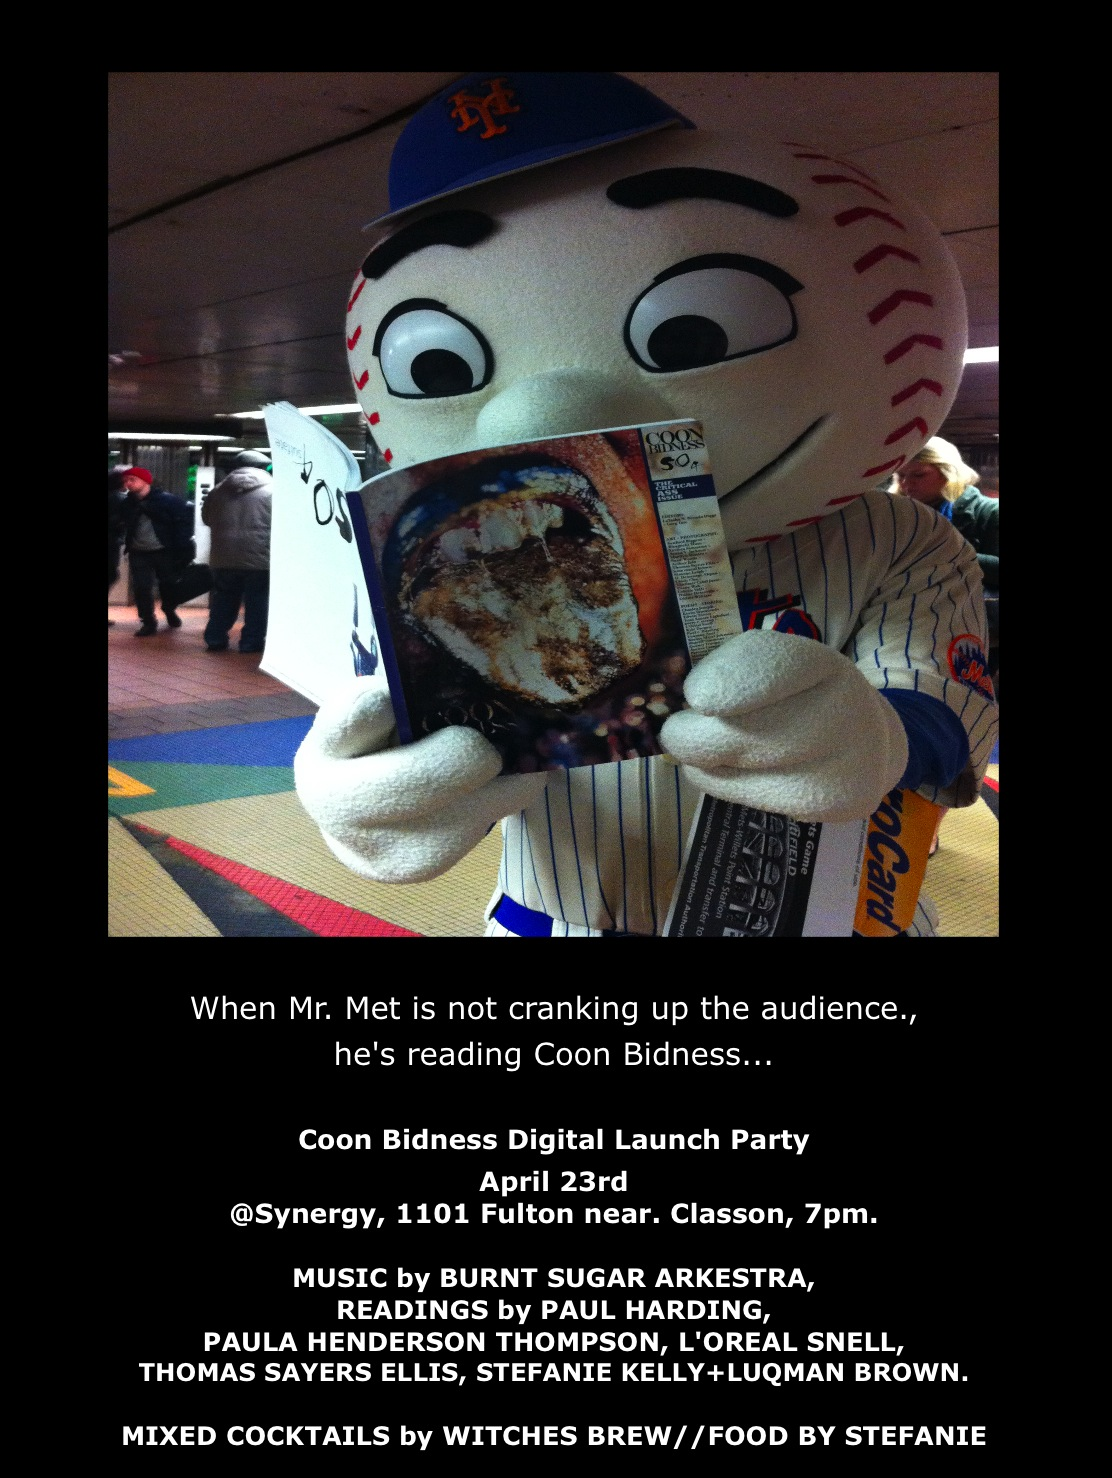 Coon Bidness flyer w/ Mr. Met